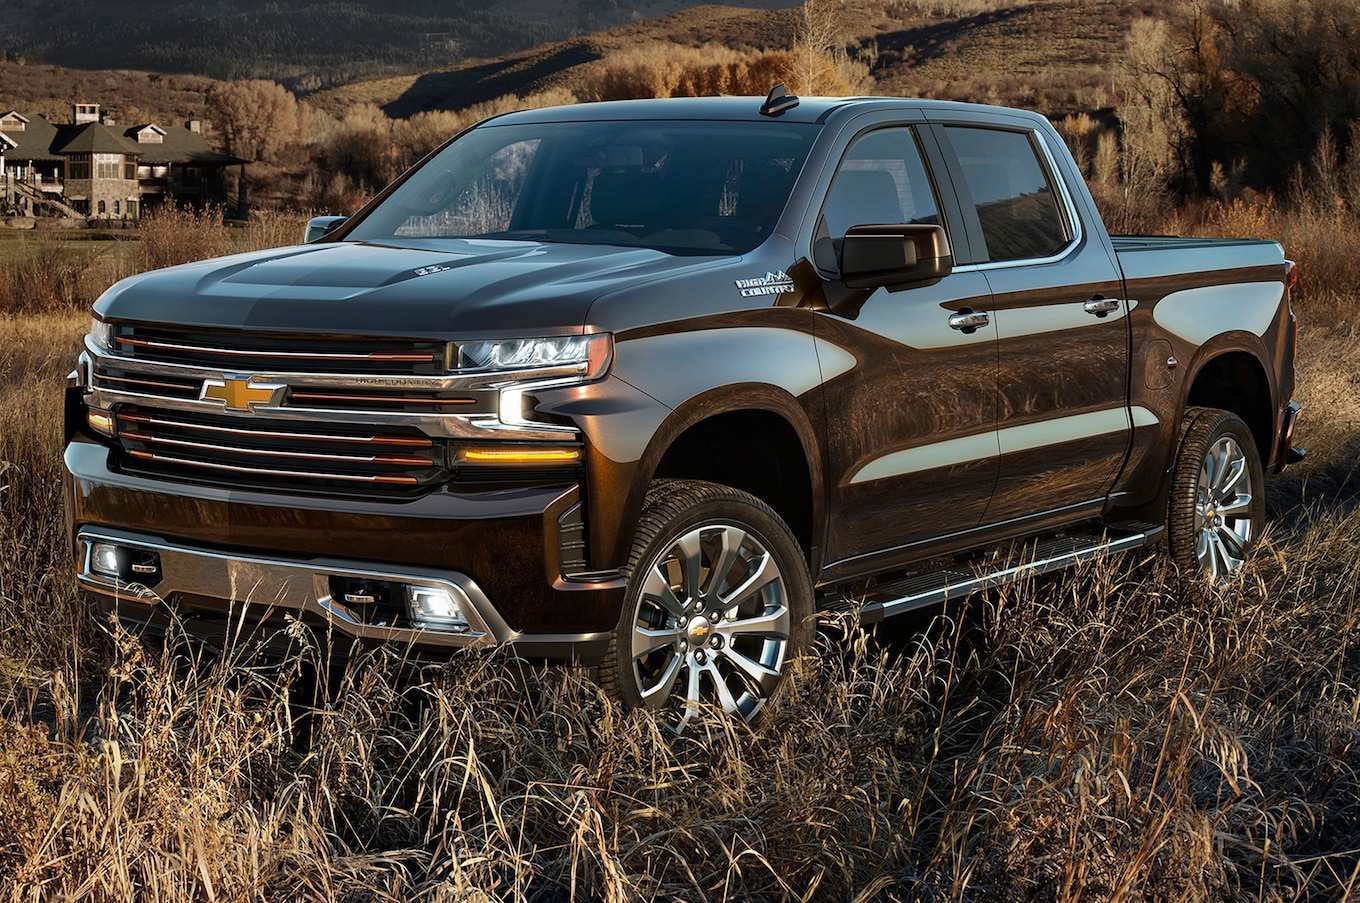 63 Great The Chevrolet Silverado 2019 Diesel First Drive New Review for The Chevrolet Silverado 2019 Diesel First Drive